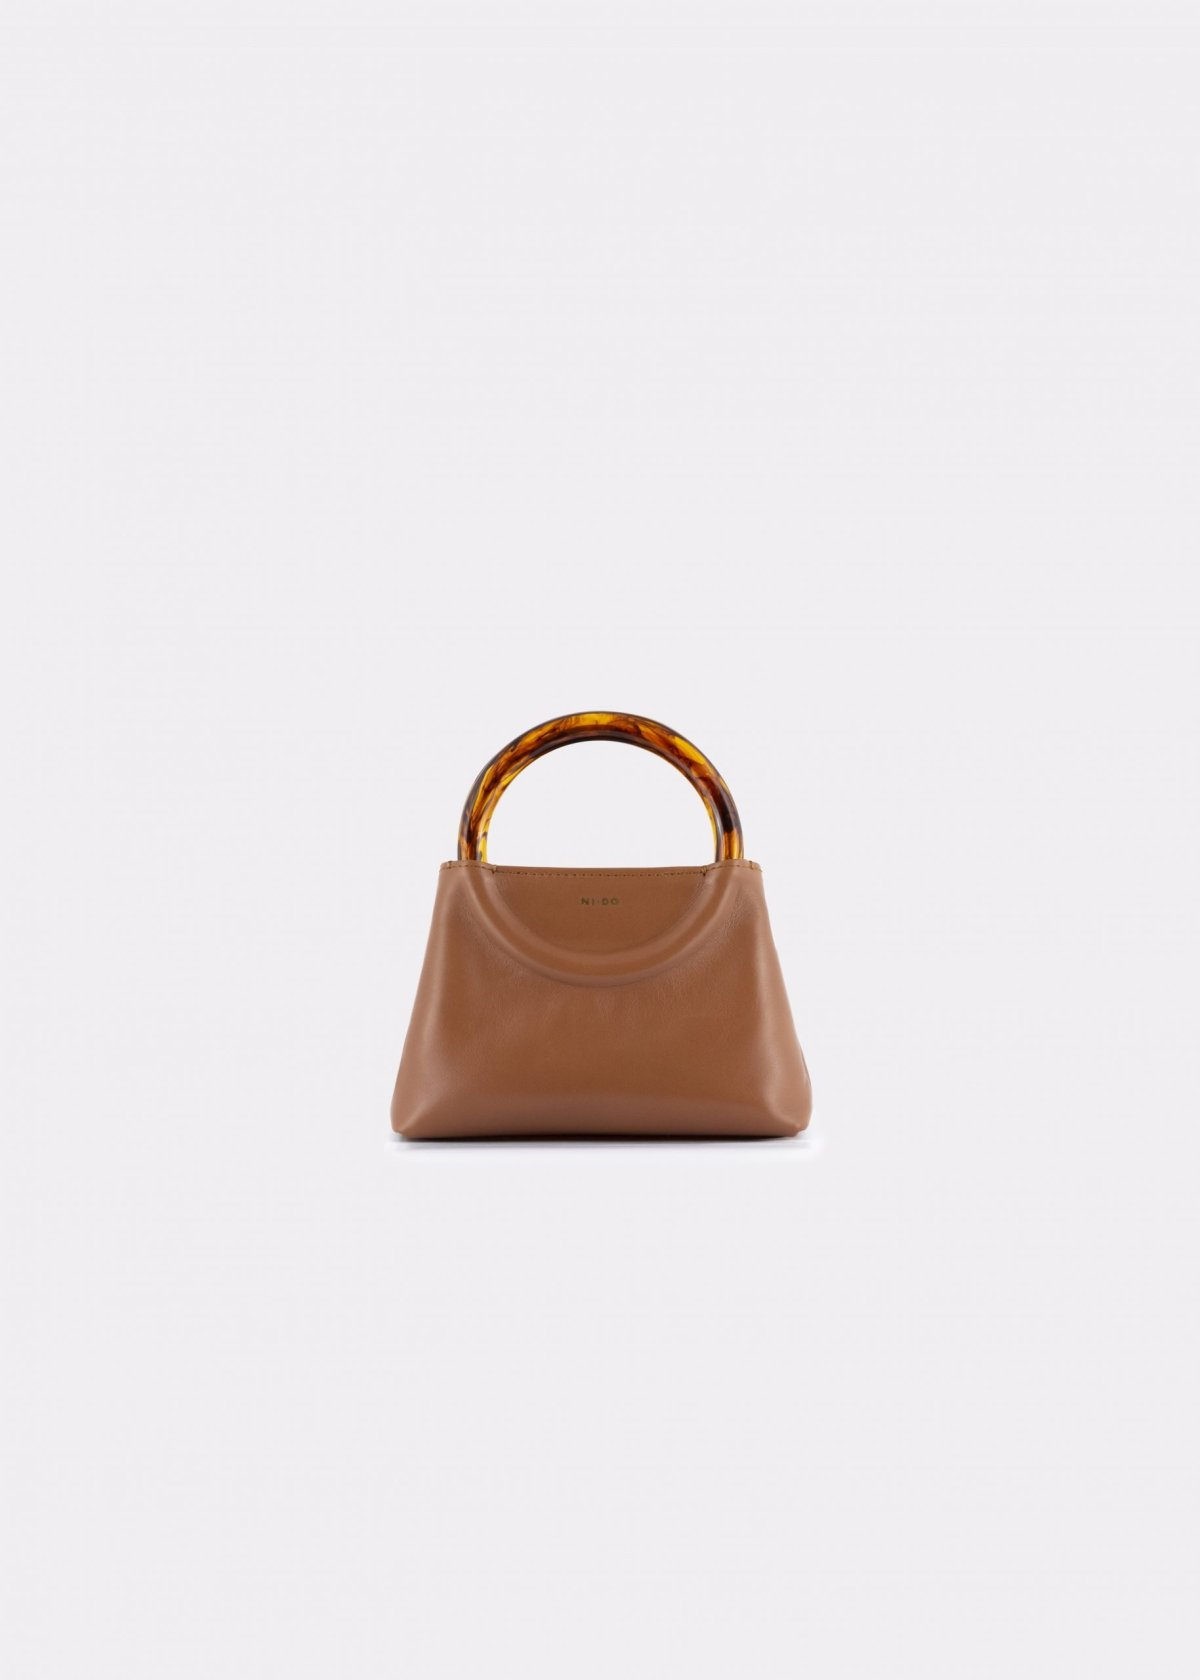 NIDO Bolla Micro bag biscuit leather Amber_front view